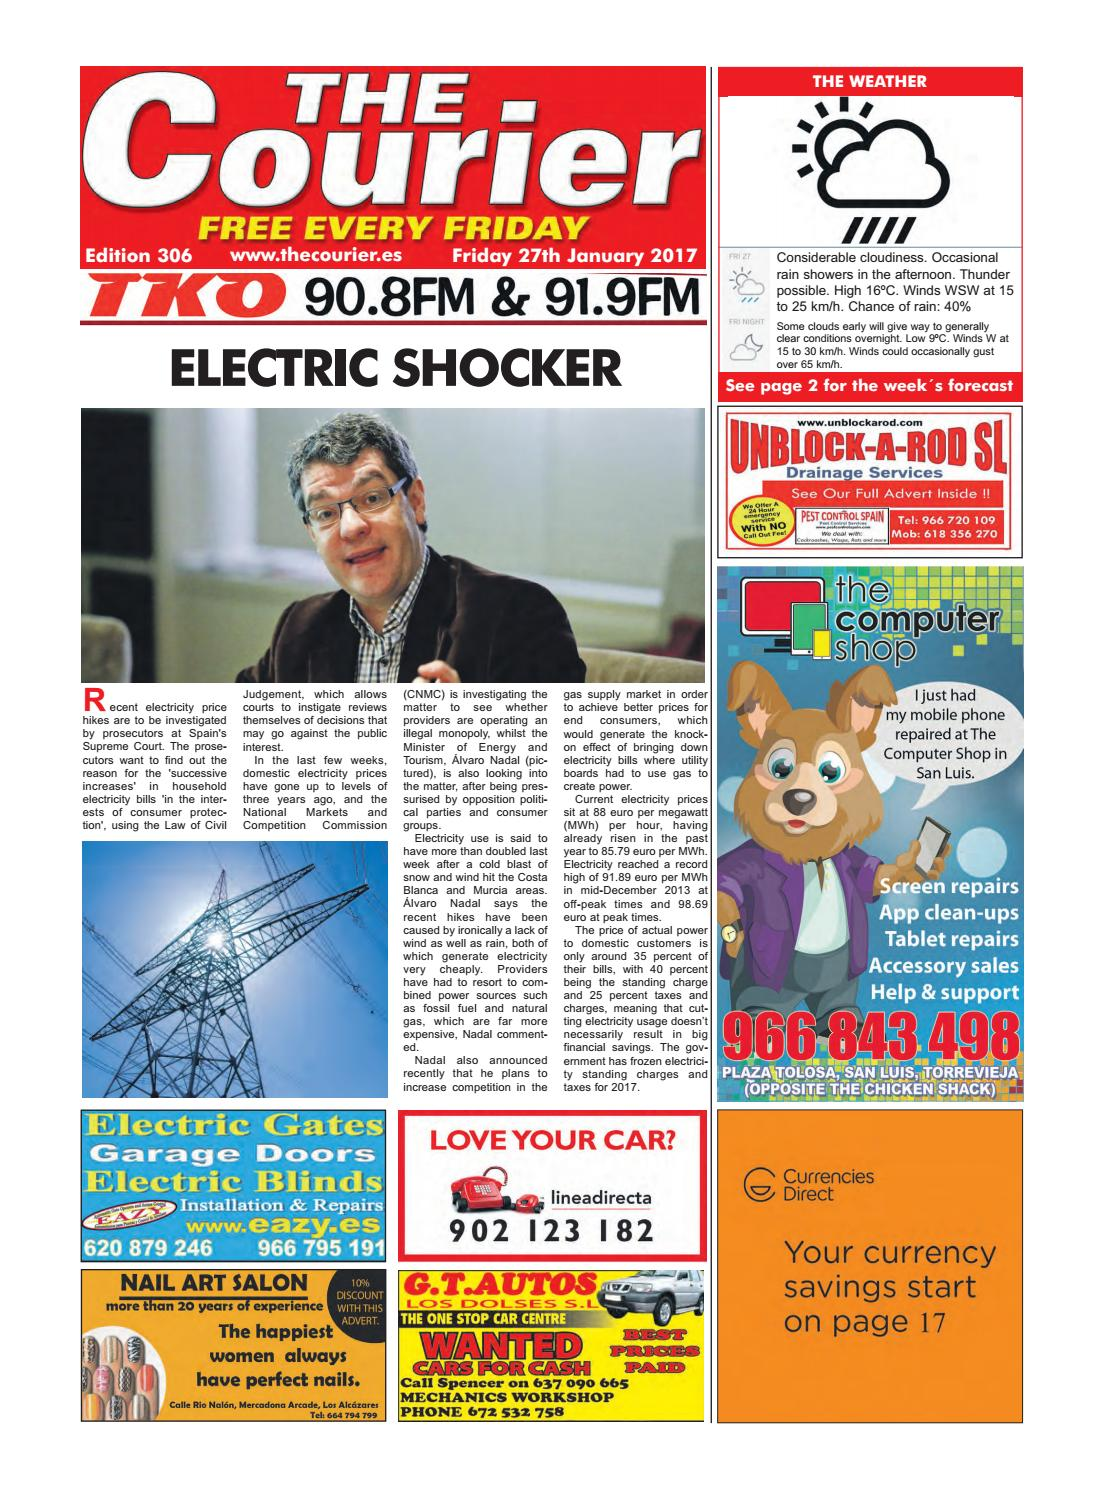 The Courier Edition 306 By The Courier Newspaper Issuu